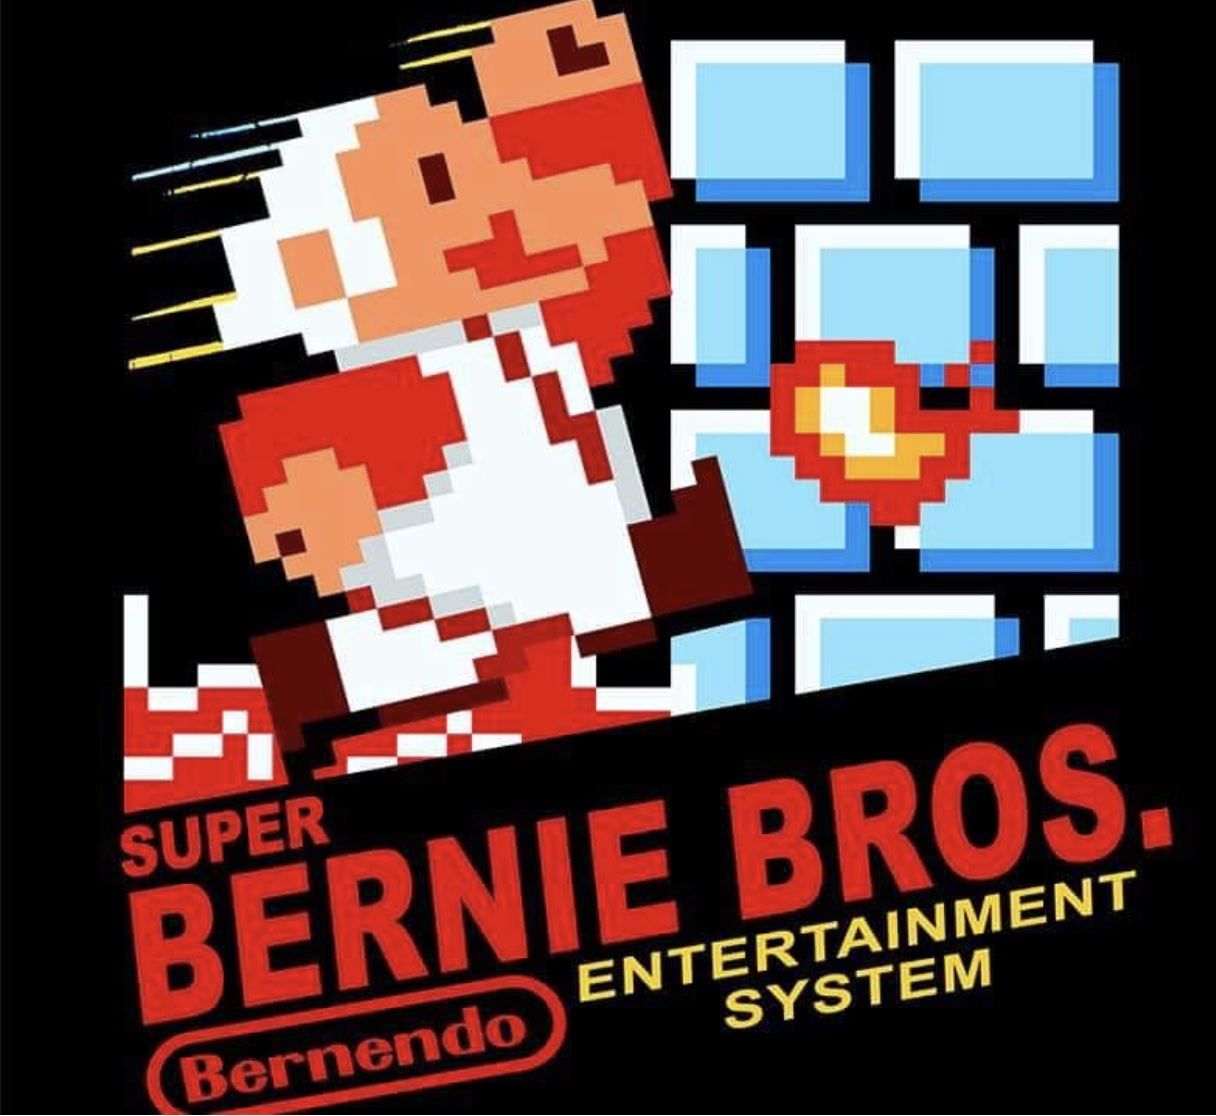 Available Wherever Bernendo Games Are Sold